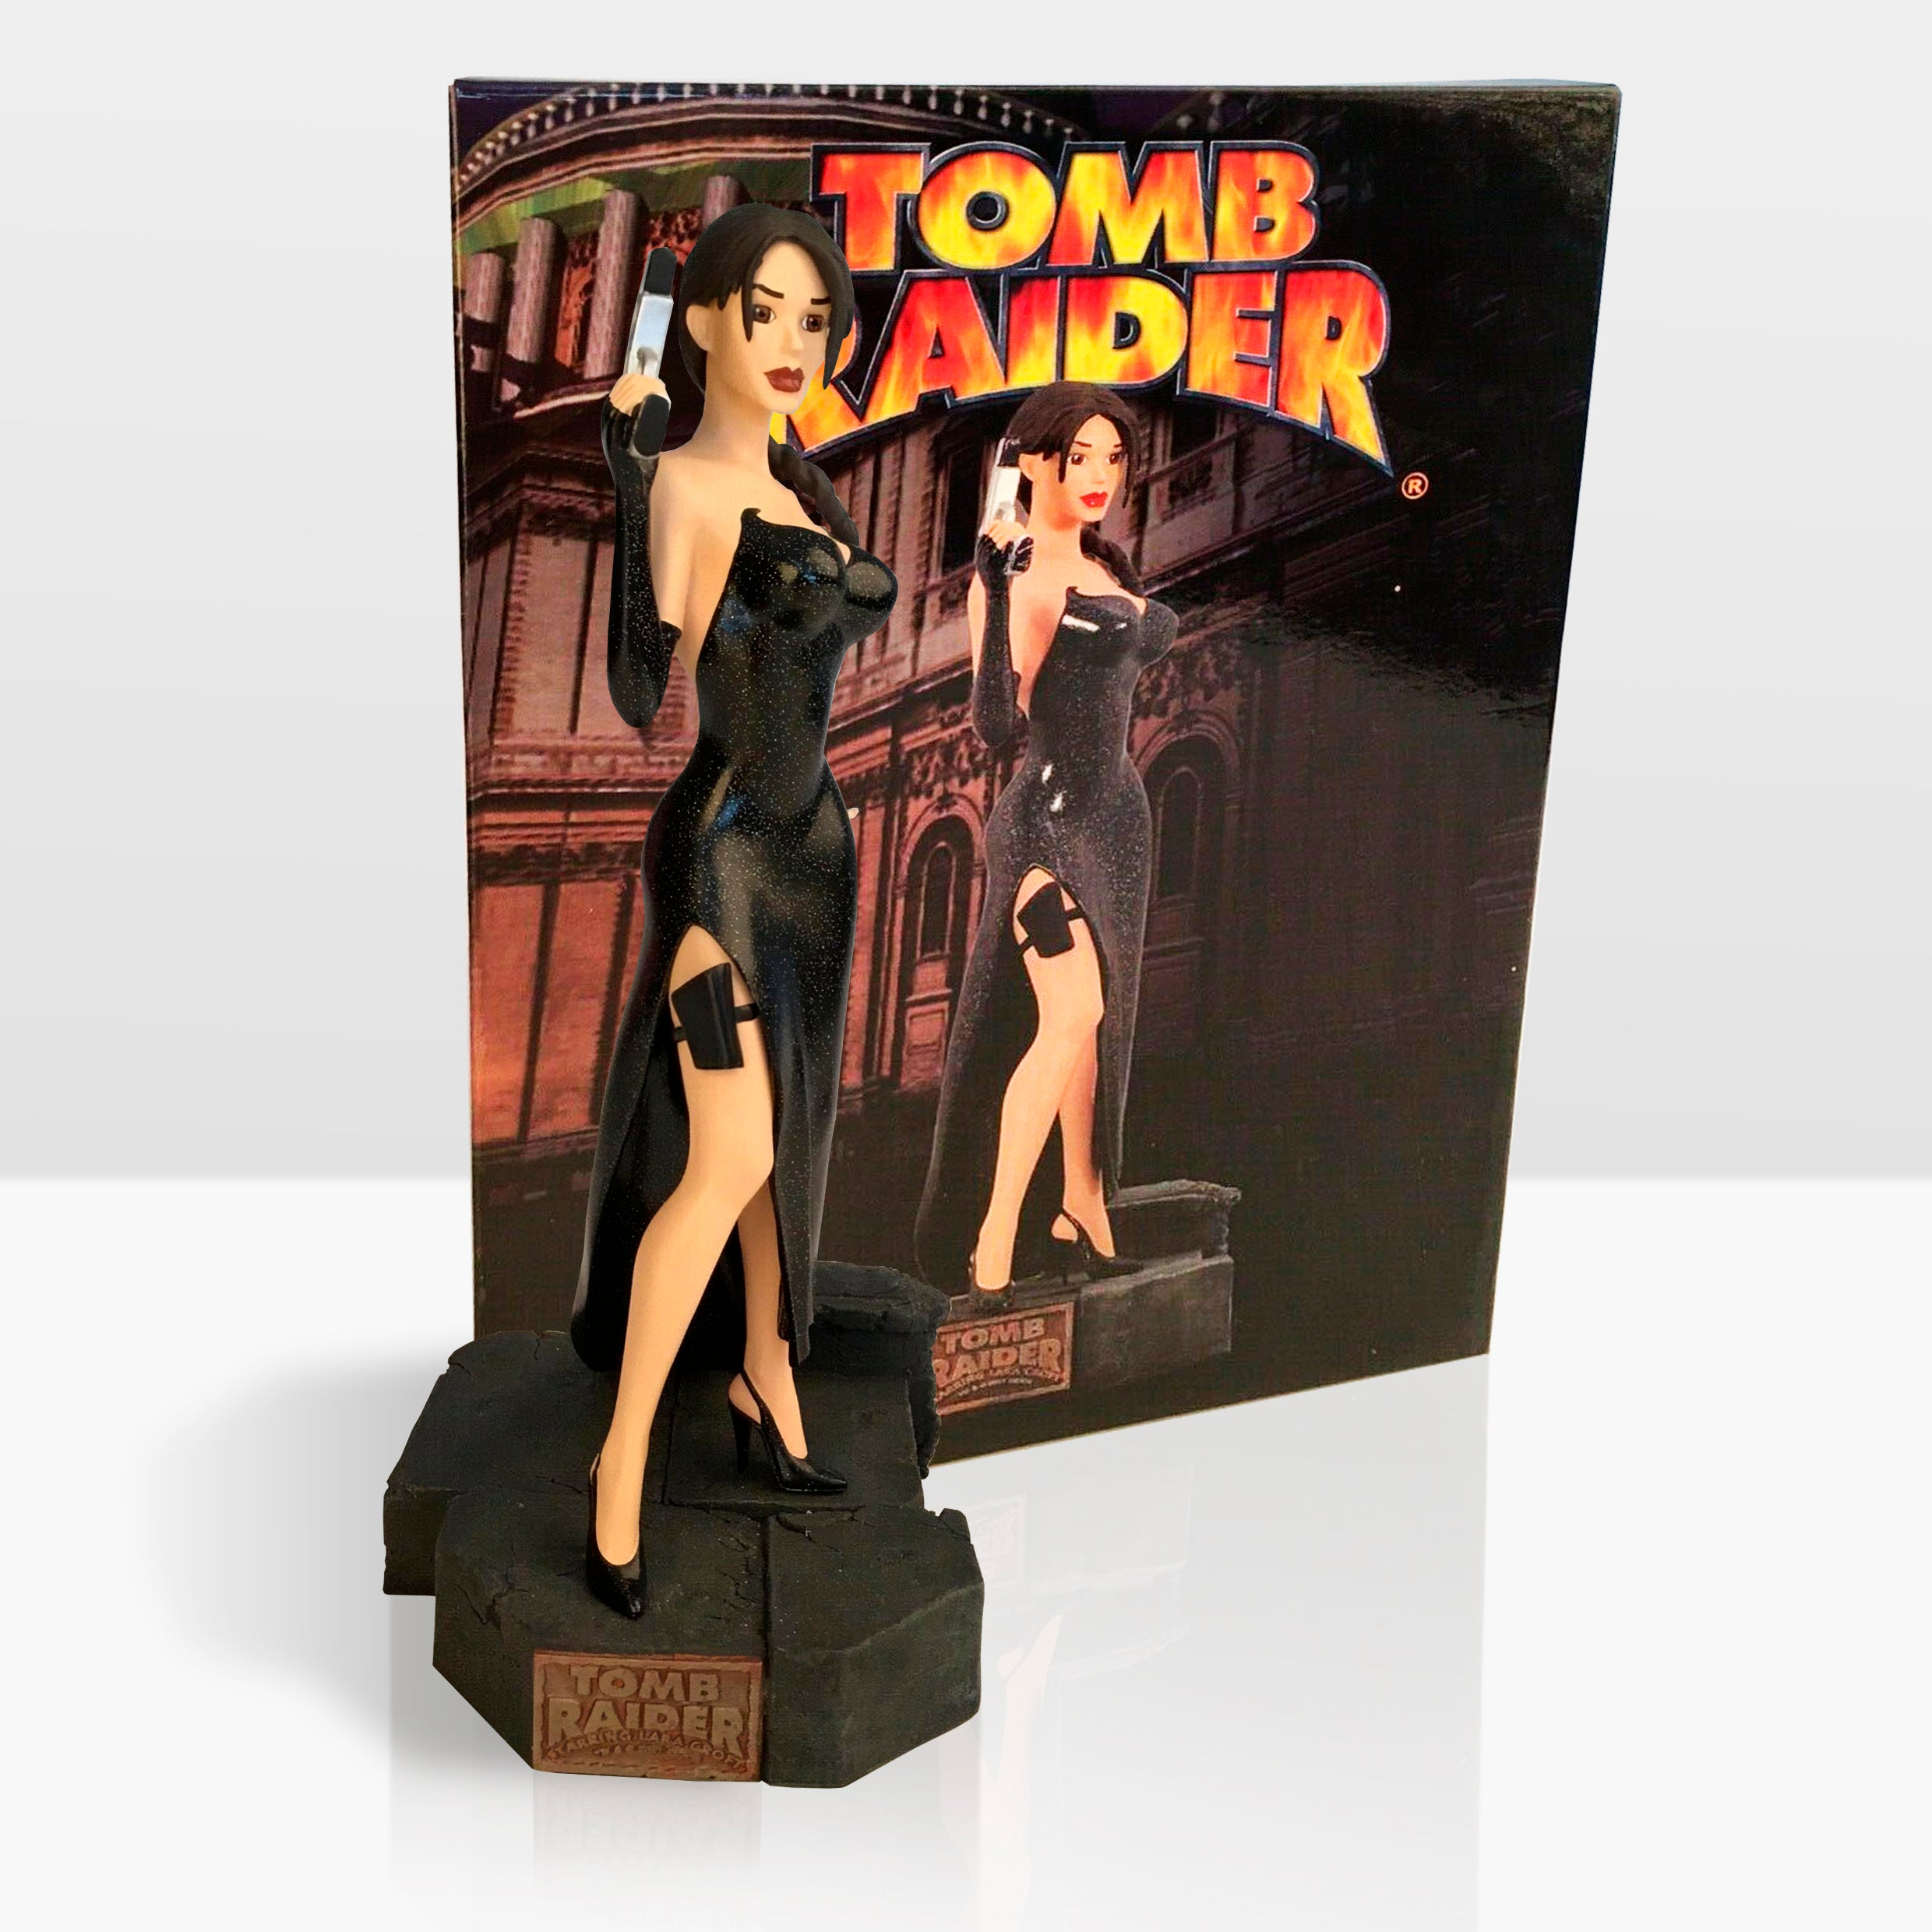 A Lara Croft action figure standing against a backdrop insert of the figure. Lara is wearing the ballgown outfit from Tomb Raider Chronicles.